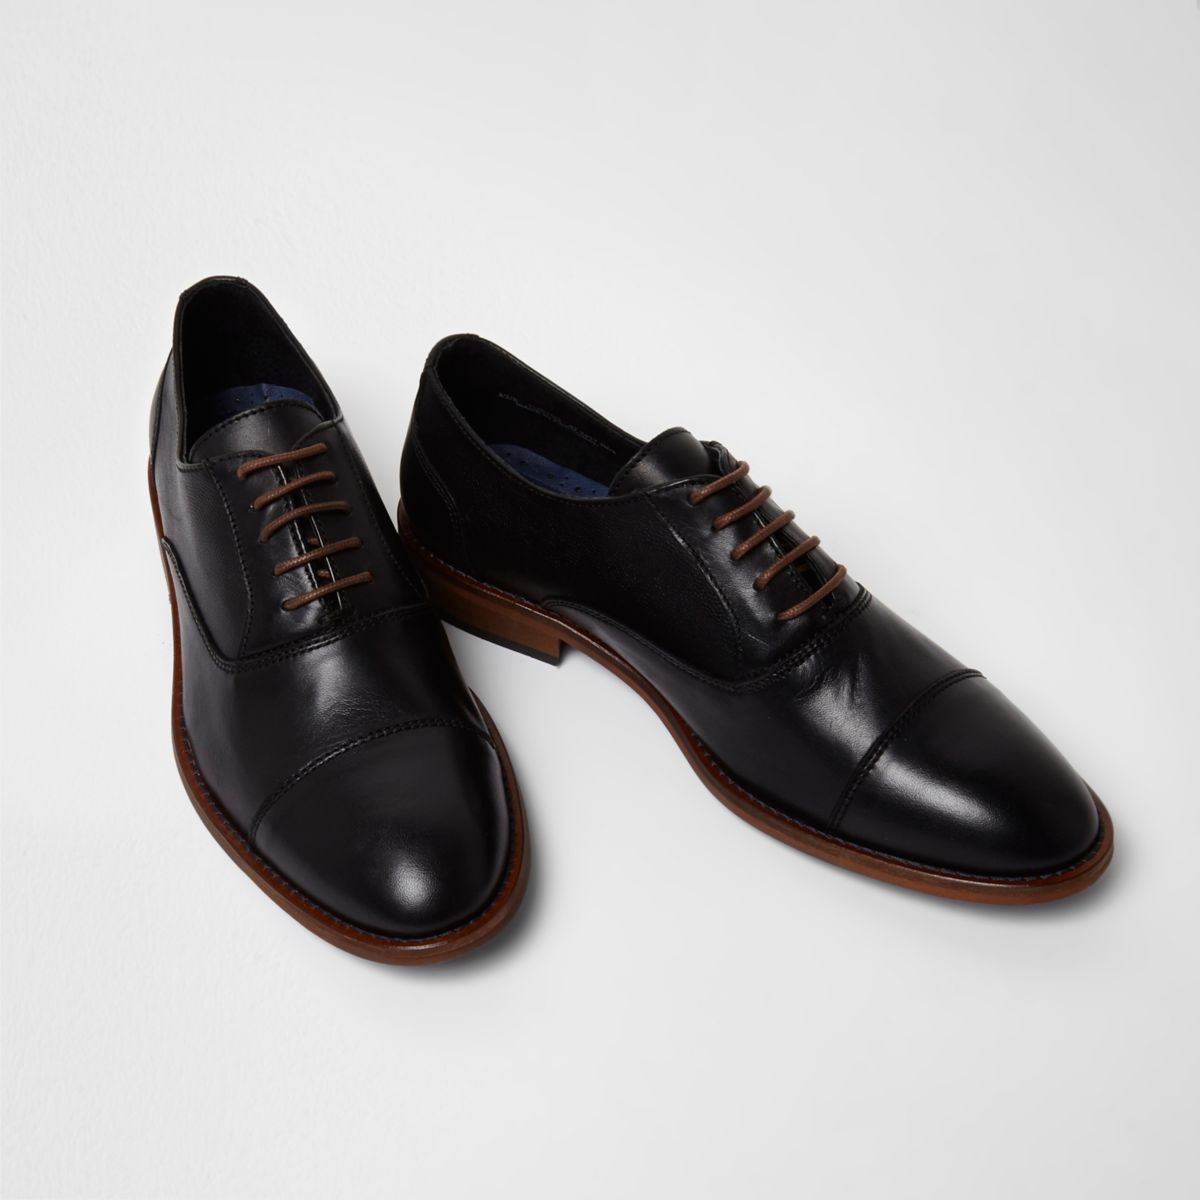 Black leather toecap lace-up oxford shoes